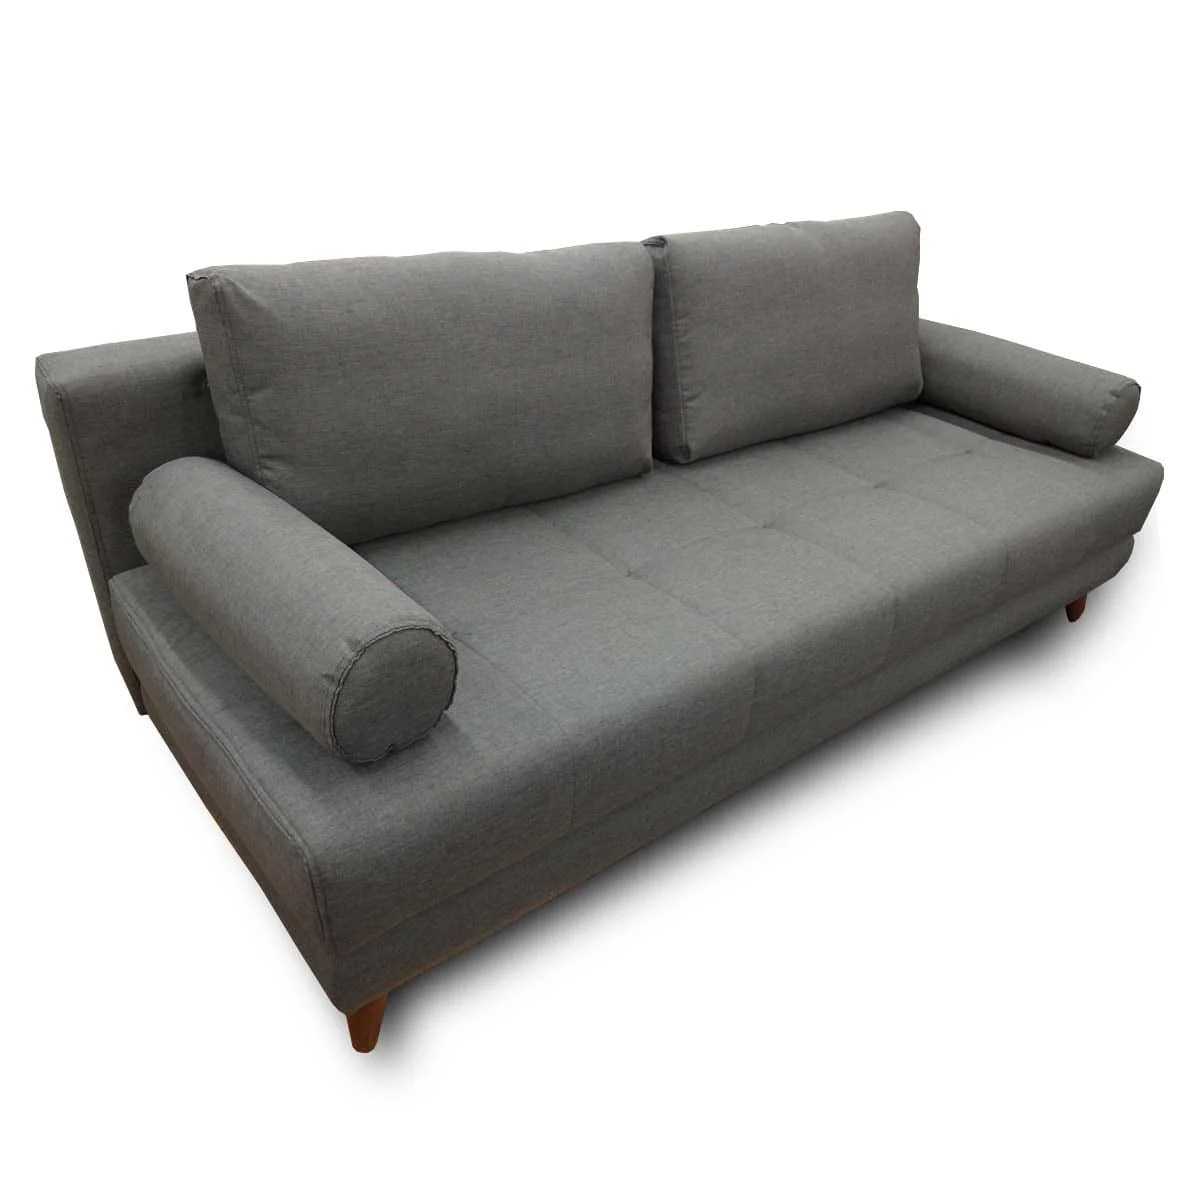 Futon Factory Paris Stella Diego Dark Gray Convertible Sofa Bed Queen Sleeper By Istikbal Furniture